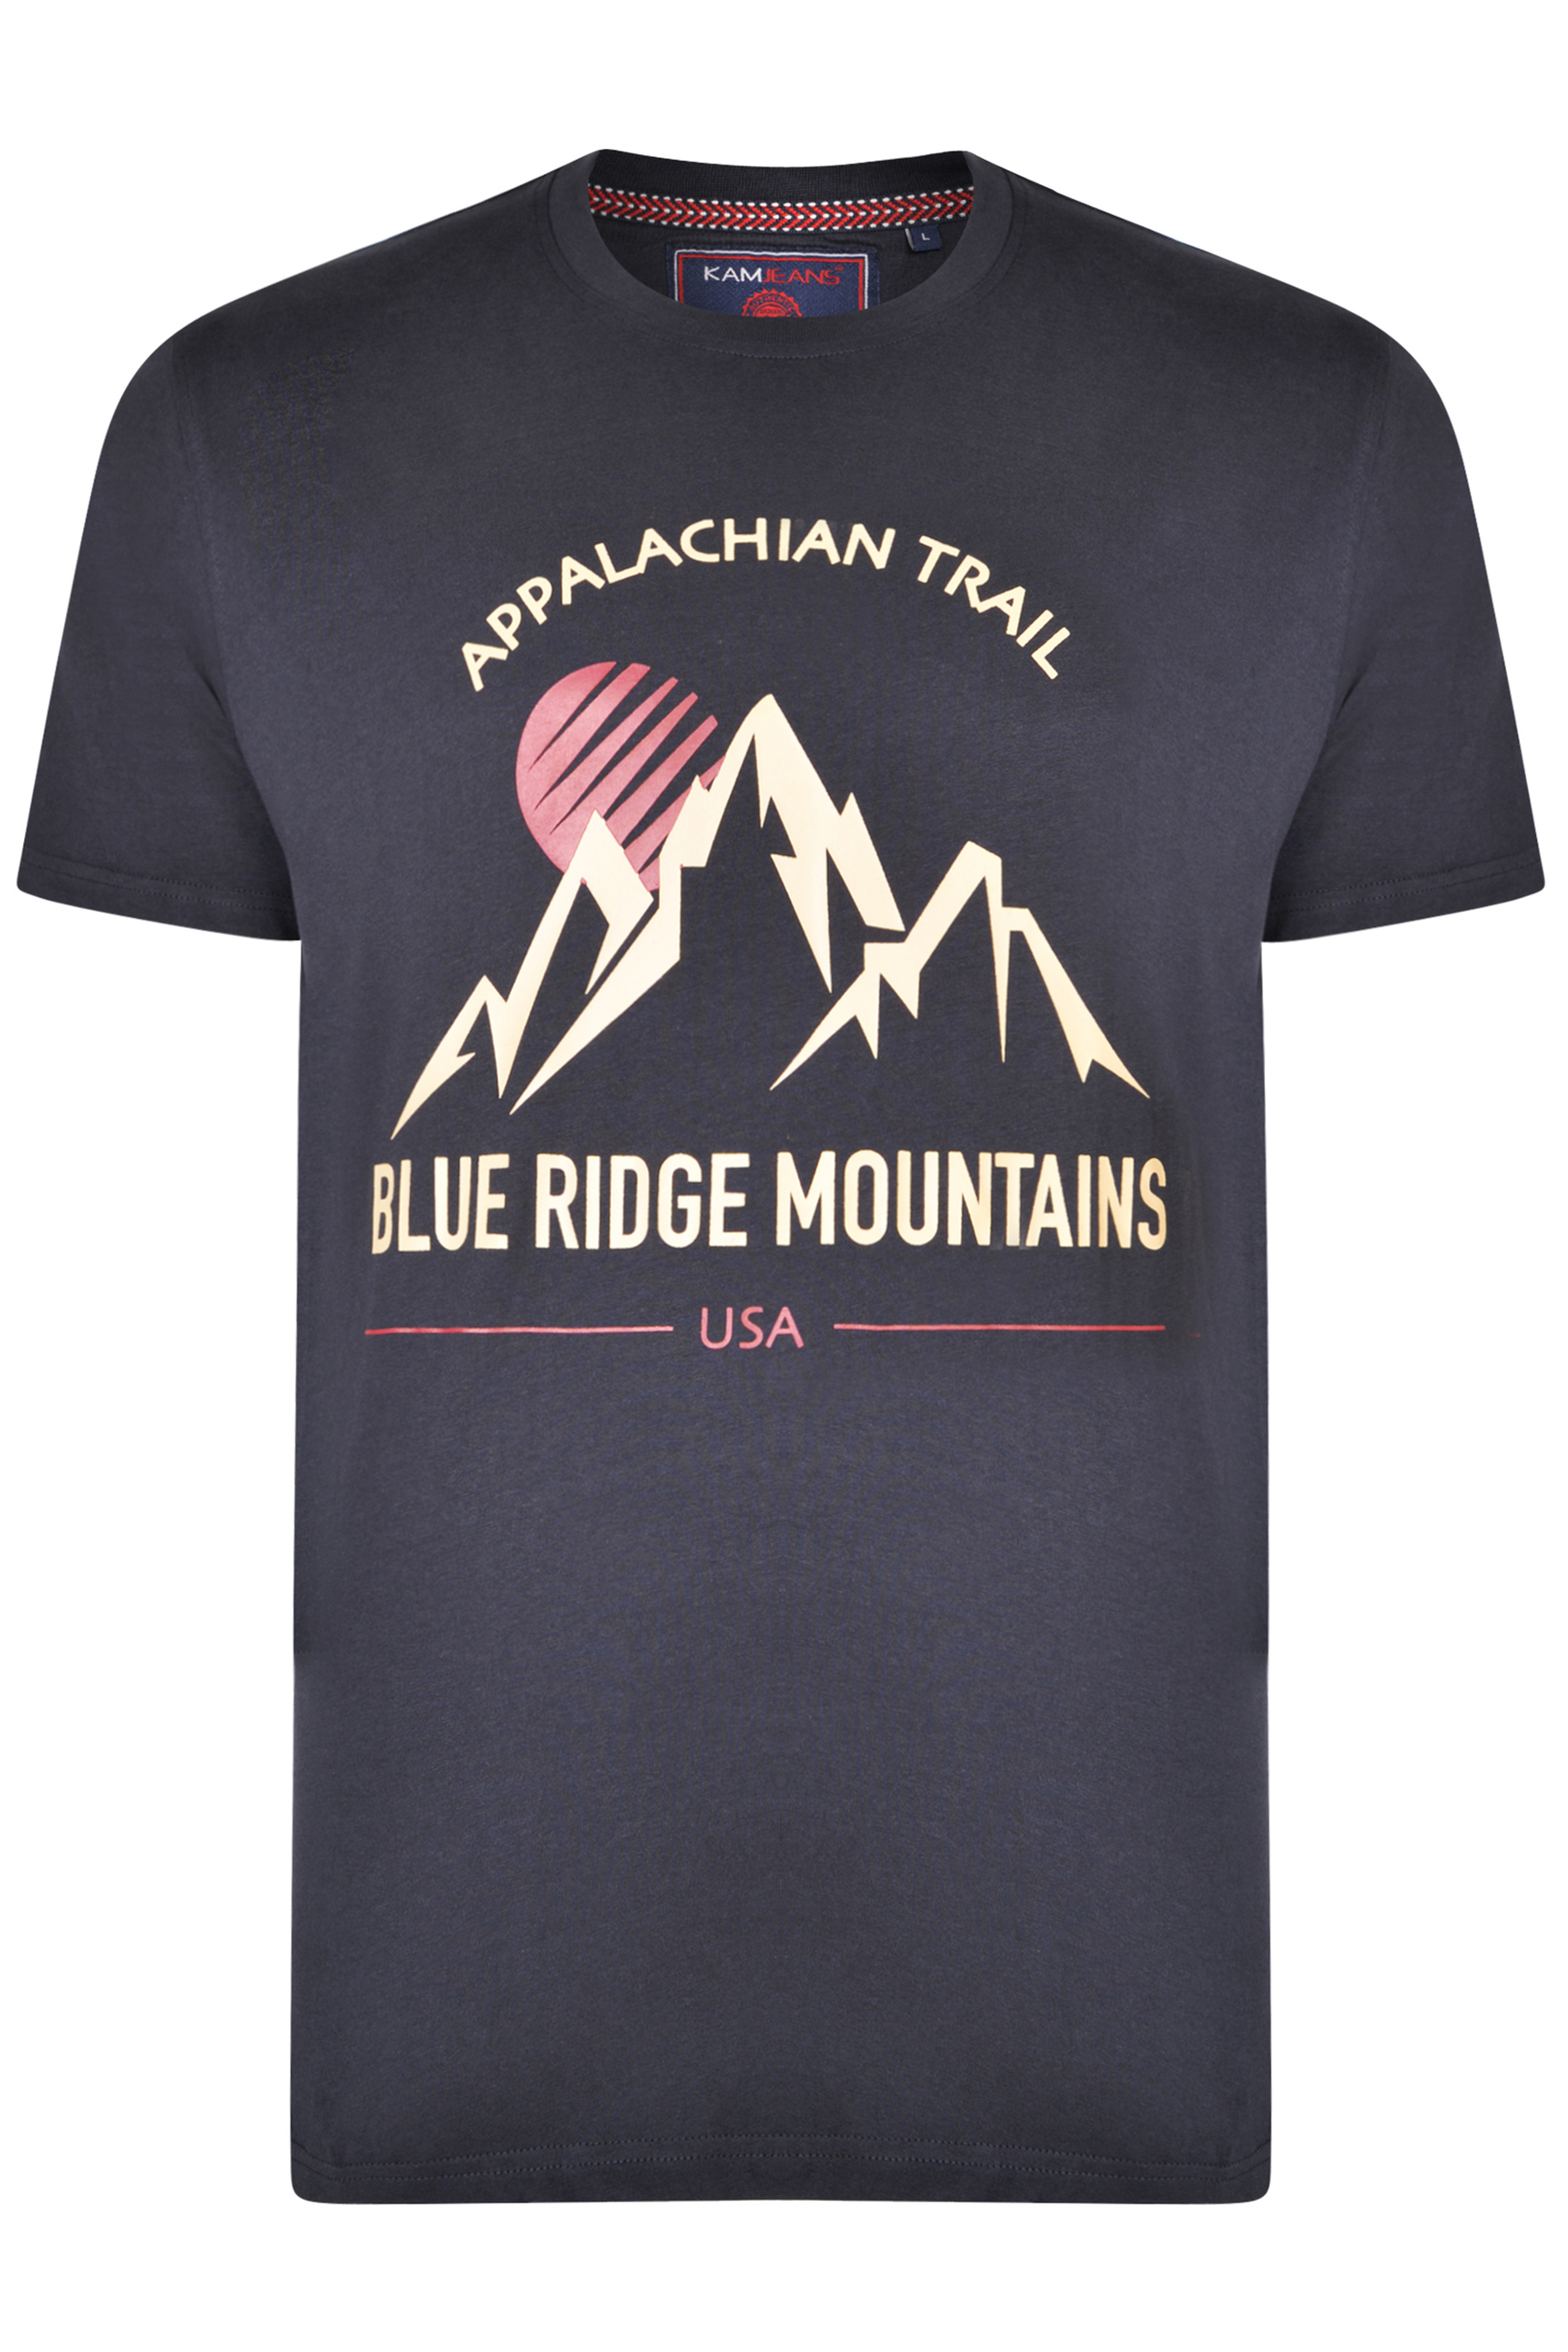 KAM Black Mountain Trail Graphic Print T-Shirt